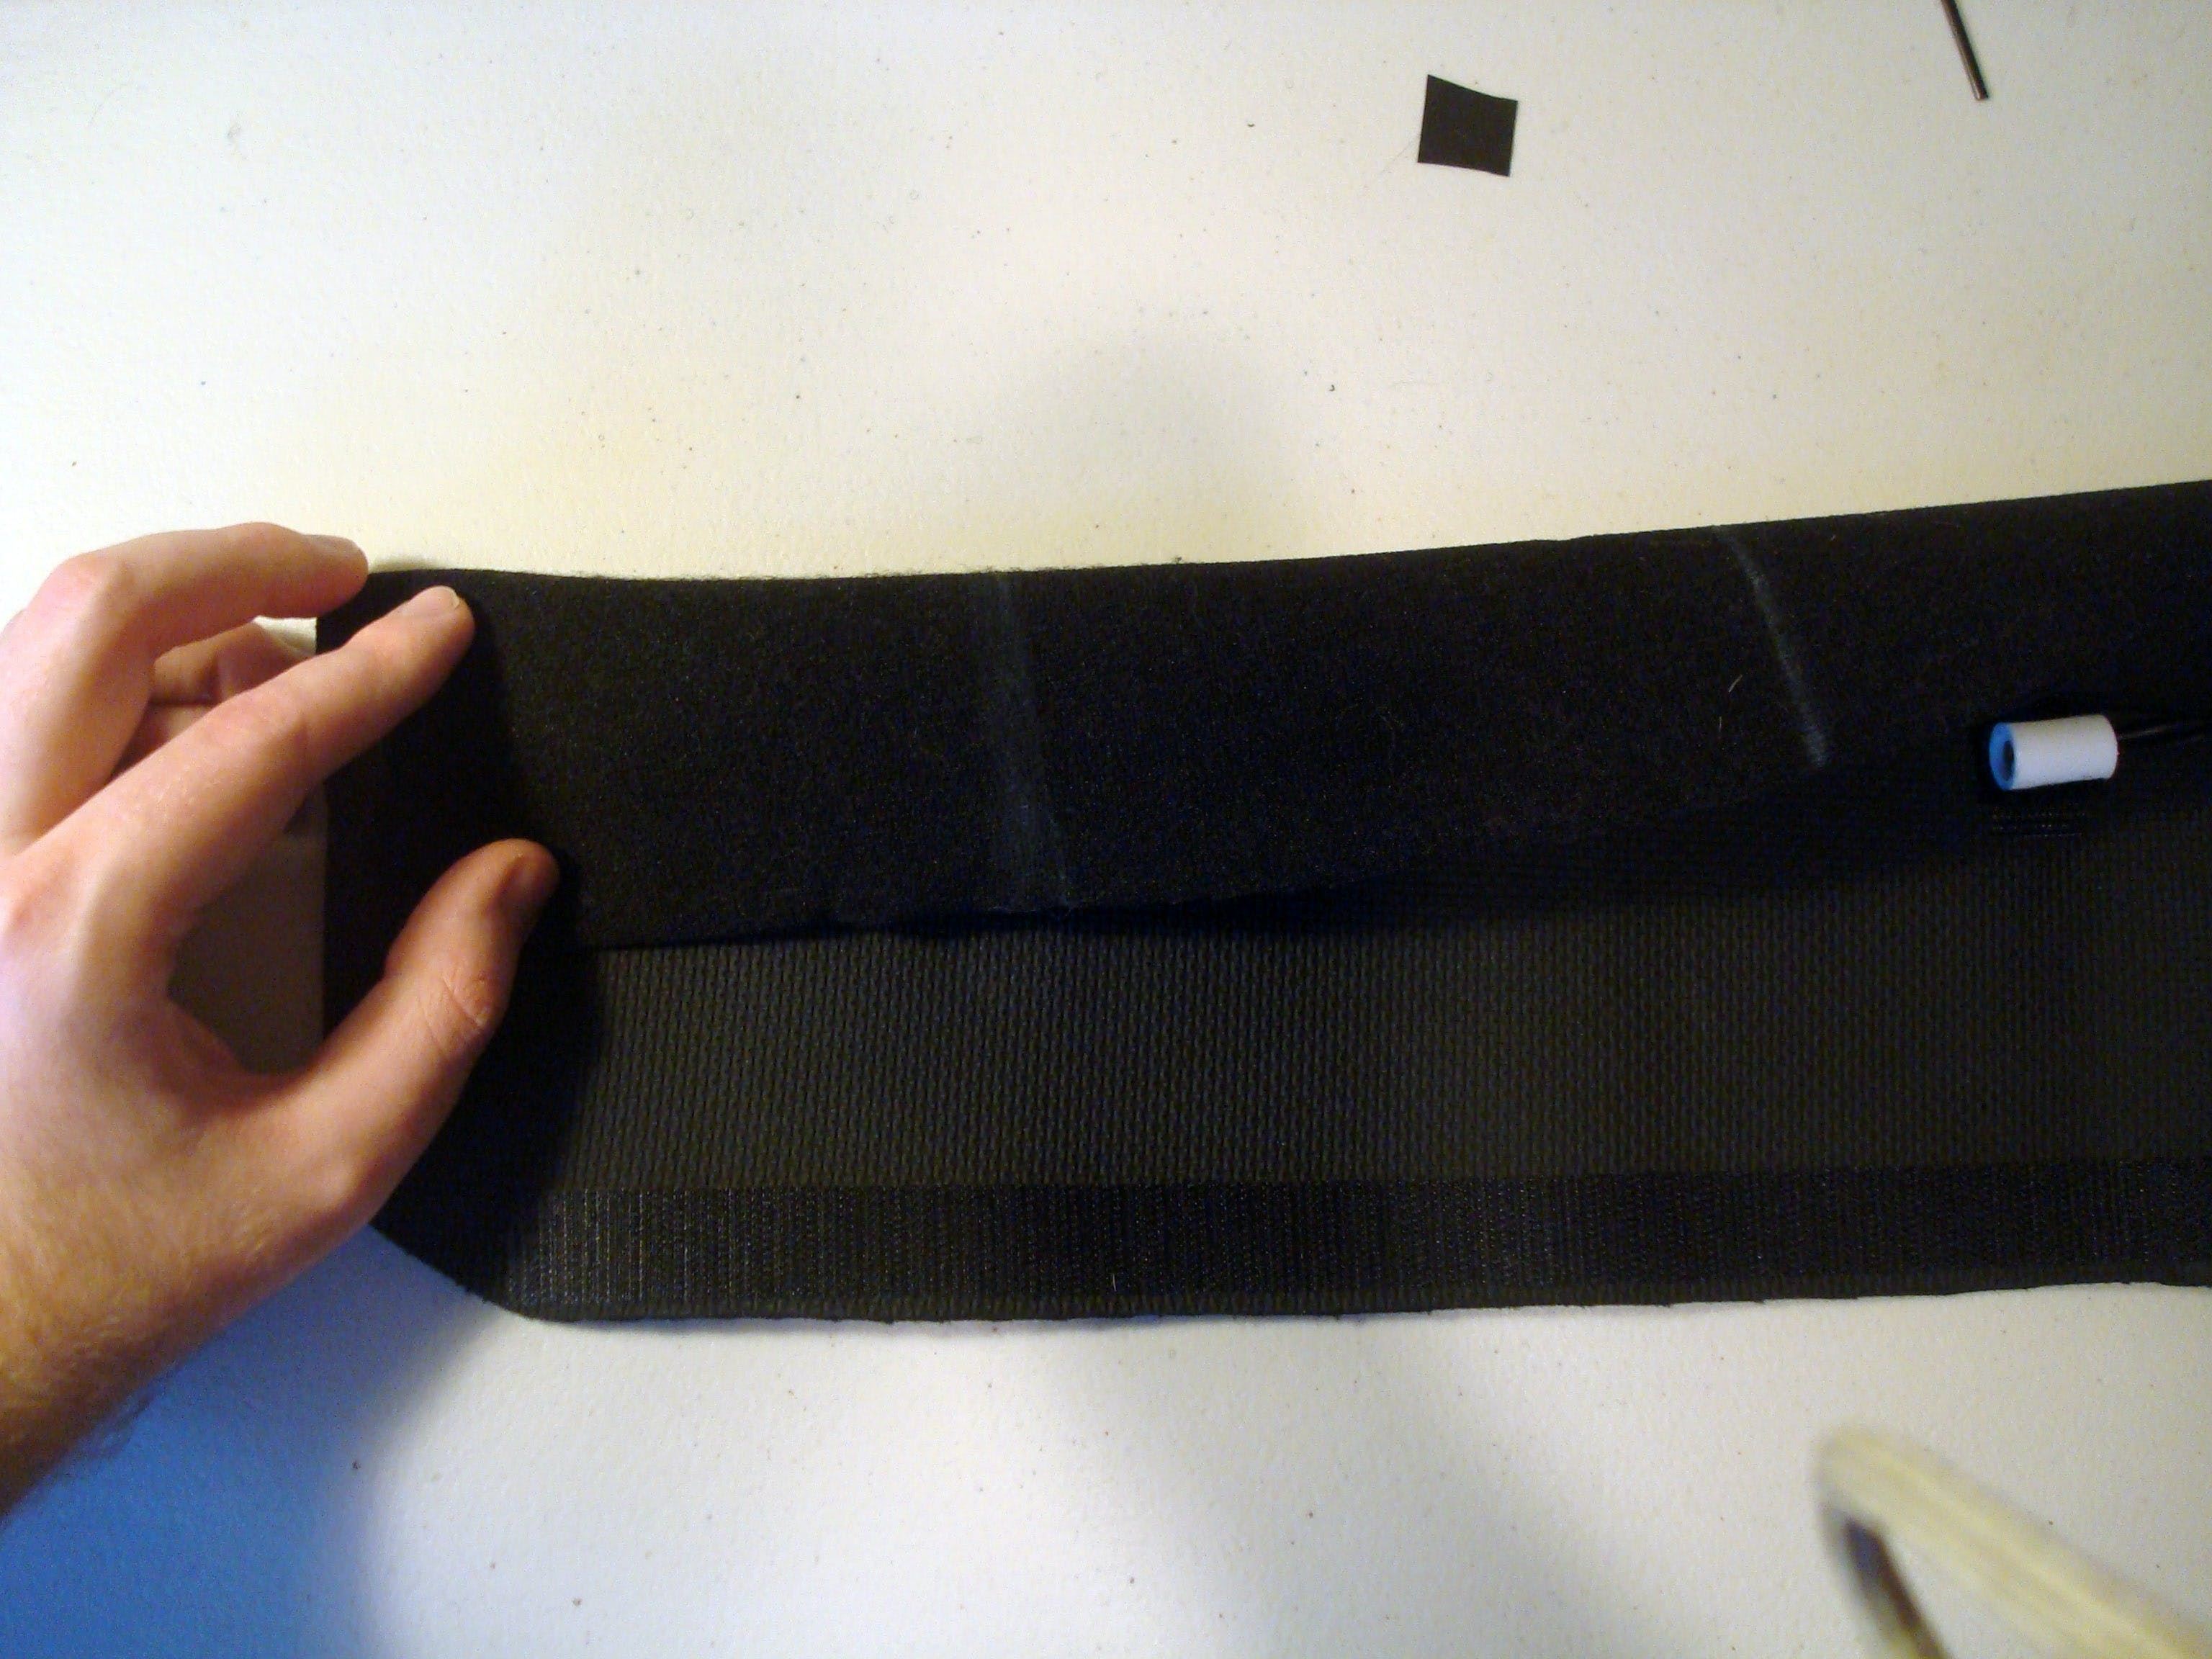 Take the upper edge of the belt (The edge without the velcro on it) and fold it over the tactors.